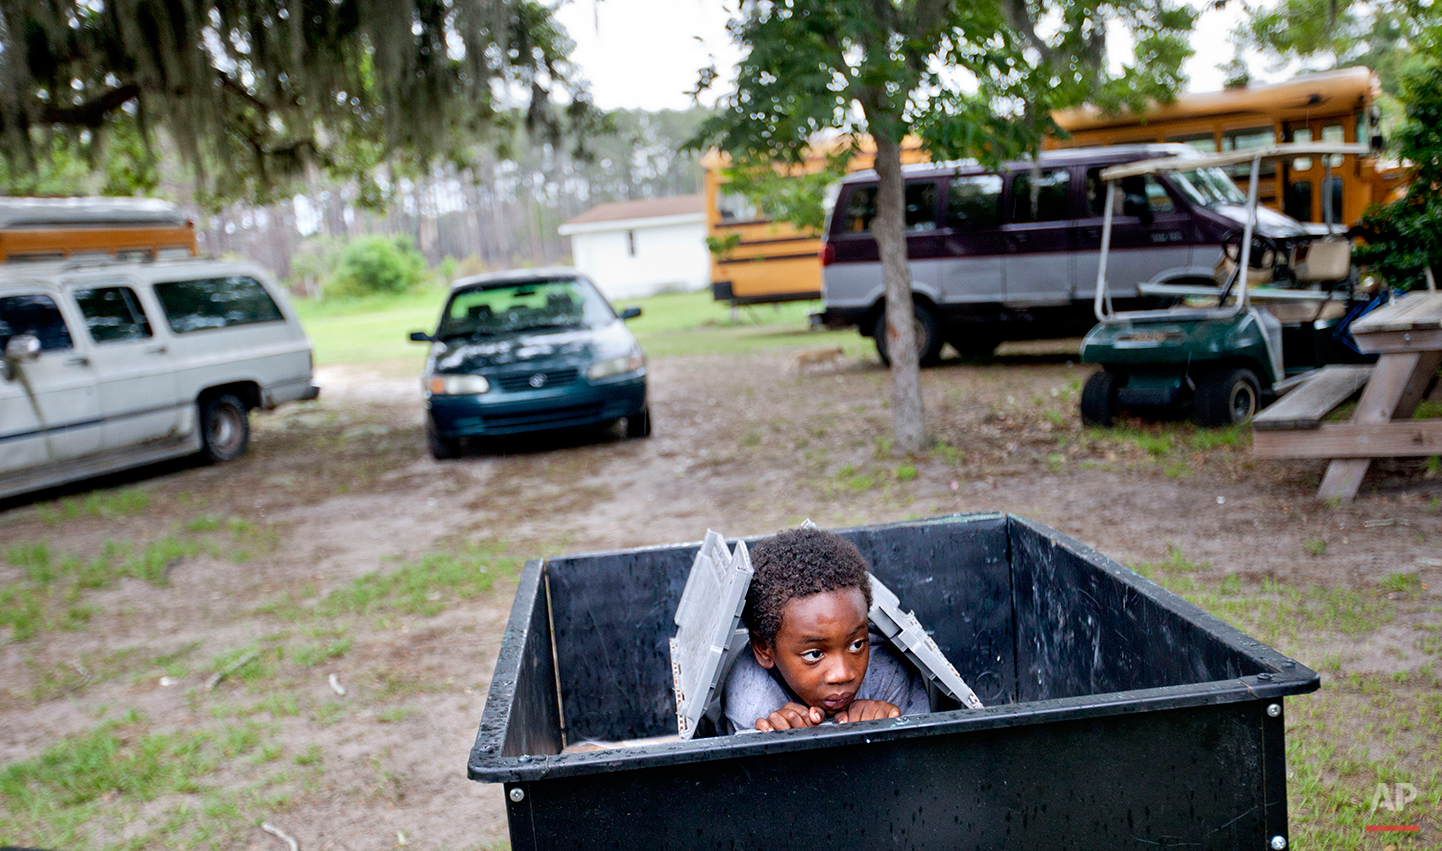 Jermarkest Wilson, 7, plays in a cart in the backyard of his home on Sapelo Island, Ga. on Sunday, June 9, 2013. Eight children catch a ferry every morning to attend school on the mainland since the last school operating on the island closed in 1978. (AP Photo/David Goldman)